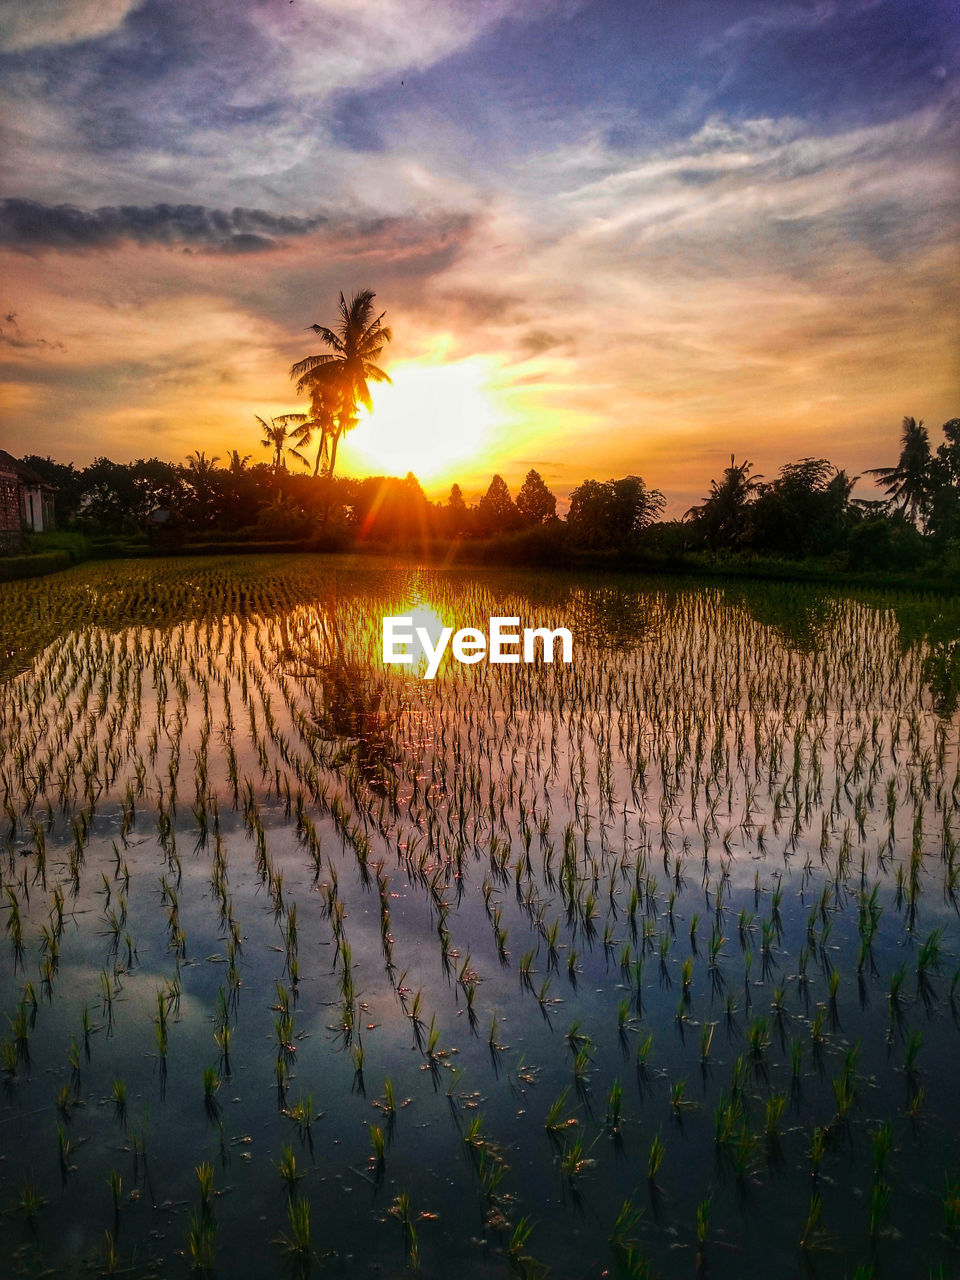 sunset, sky, beauty in nature, scenics - nature, plant, tranquil scene, cloud - sky, tranquility, nature, water, rural scene, orange color, landscape, land, agriculture, growth, field, rice - cereal plant, rice paddy, no people, outdoors, plantation